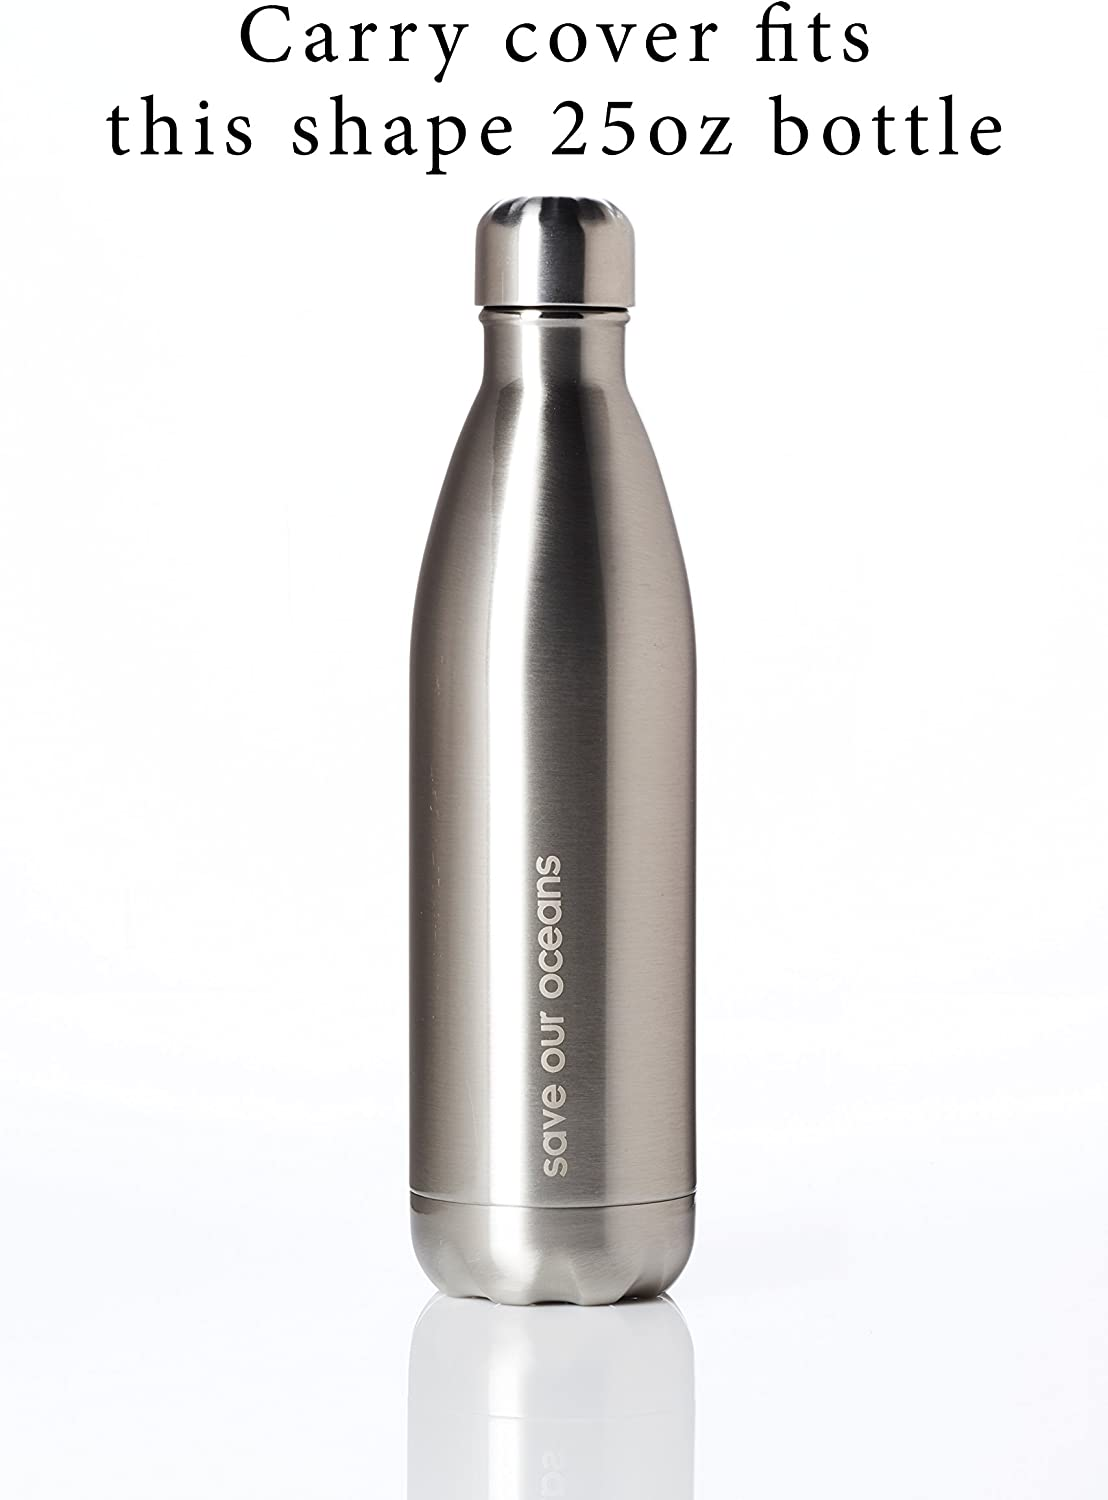 Bottle NOT Included Swell,and Other cola Style Steel Bottles BBBYO Neoprene Insulated Water Bottle Holder Bag Case Pouch Carry Cover Fits 17oz and 25oz